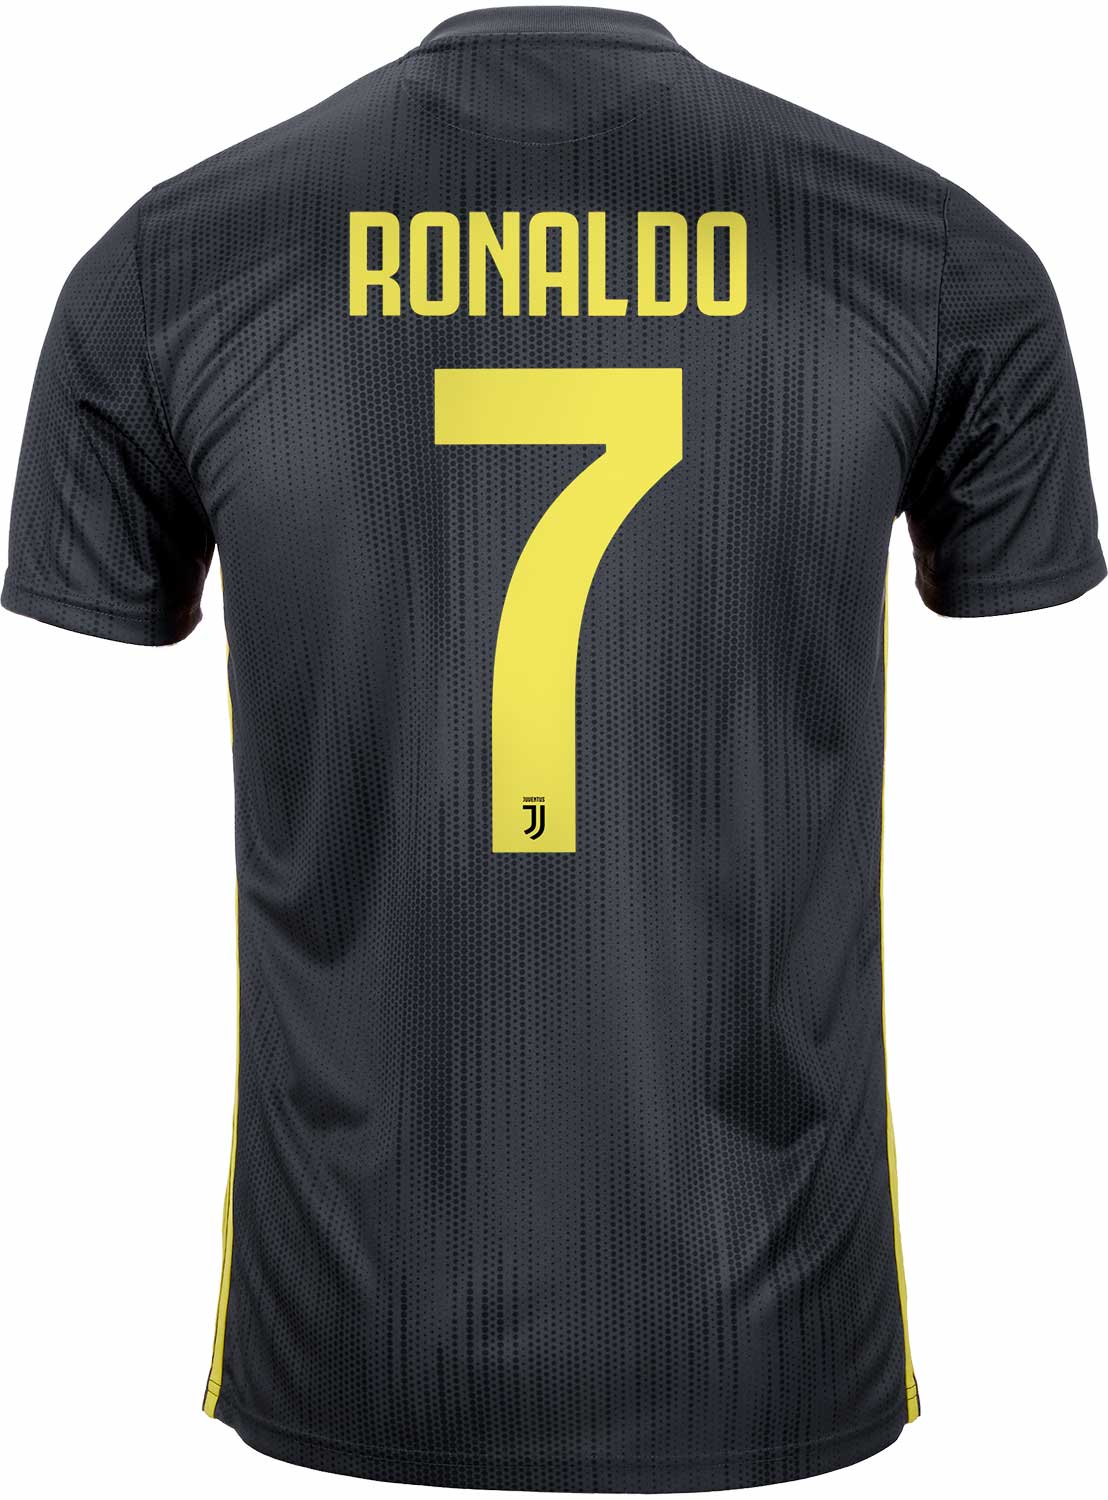 new products c66f4 54ca0 2018/19 adidas Cristiano Ronaldo Juventus 3rd Jersey - SoccerPro